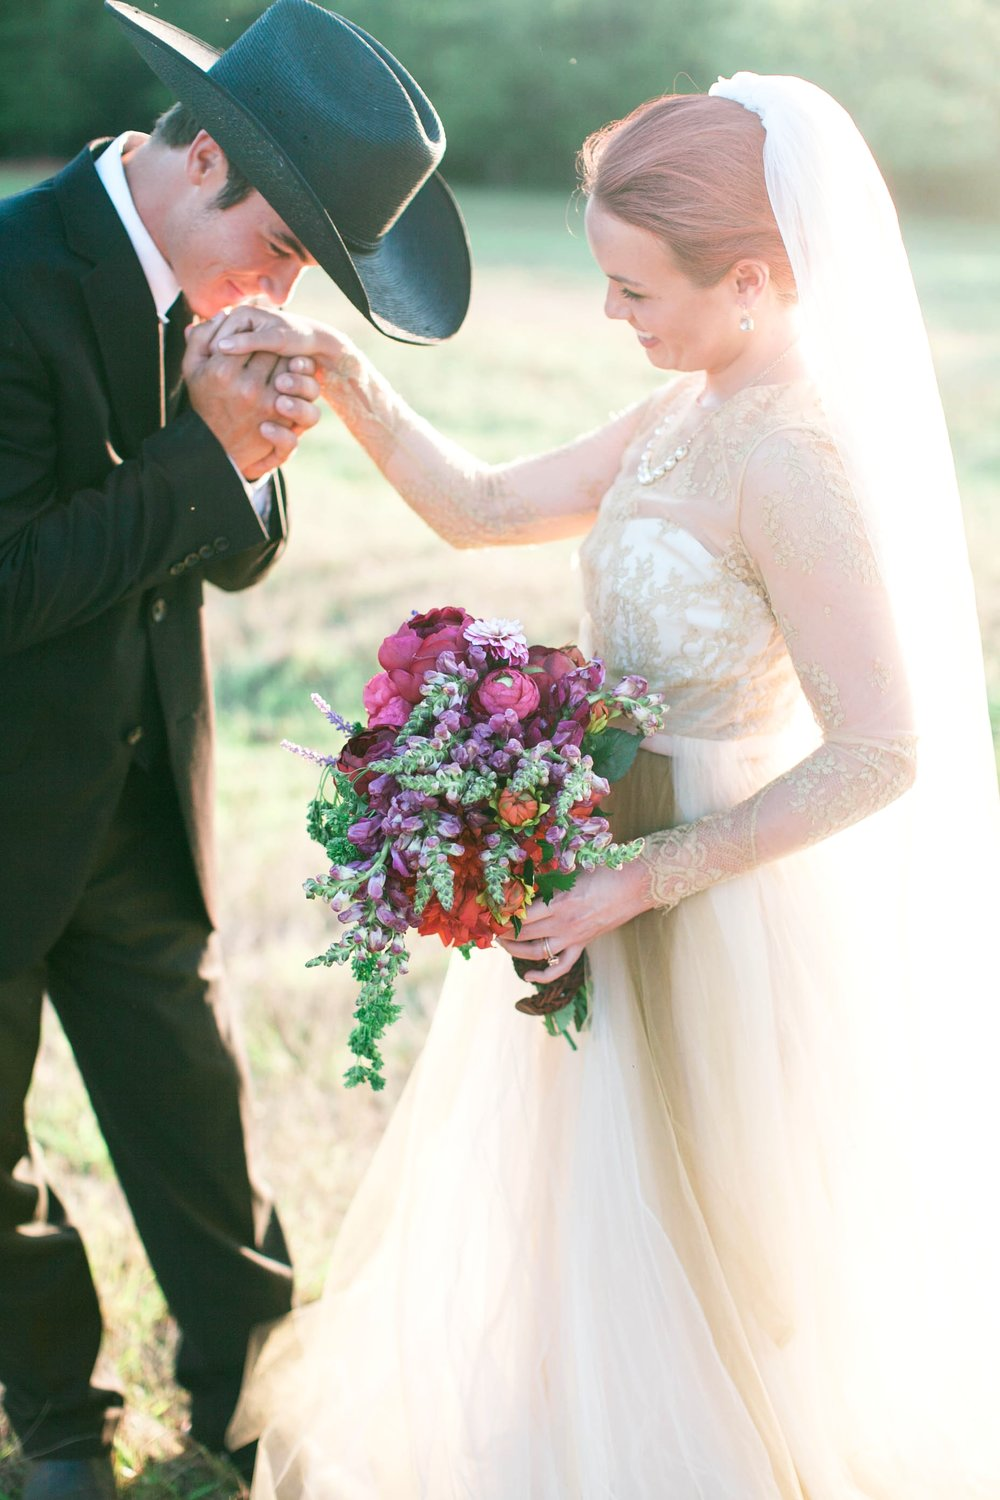 im_kristen_ree_ladd_drummon_pioneer_woman_wedding (108 of 125).jpg